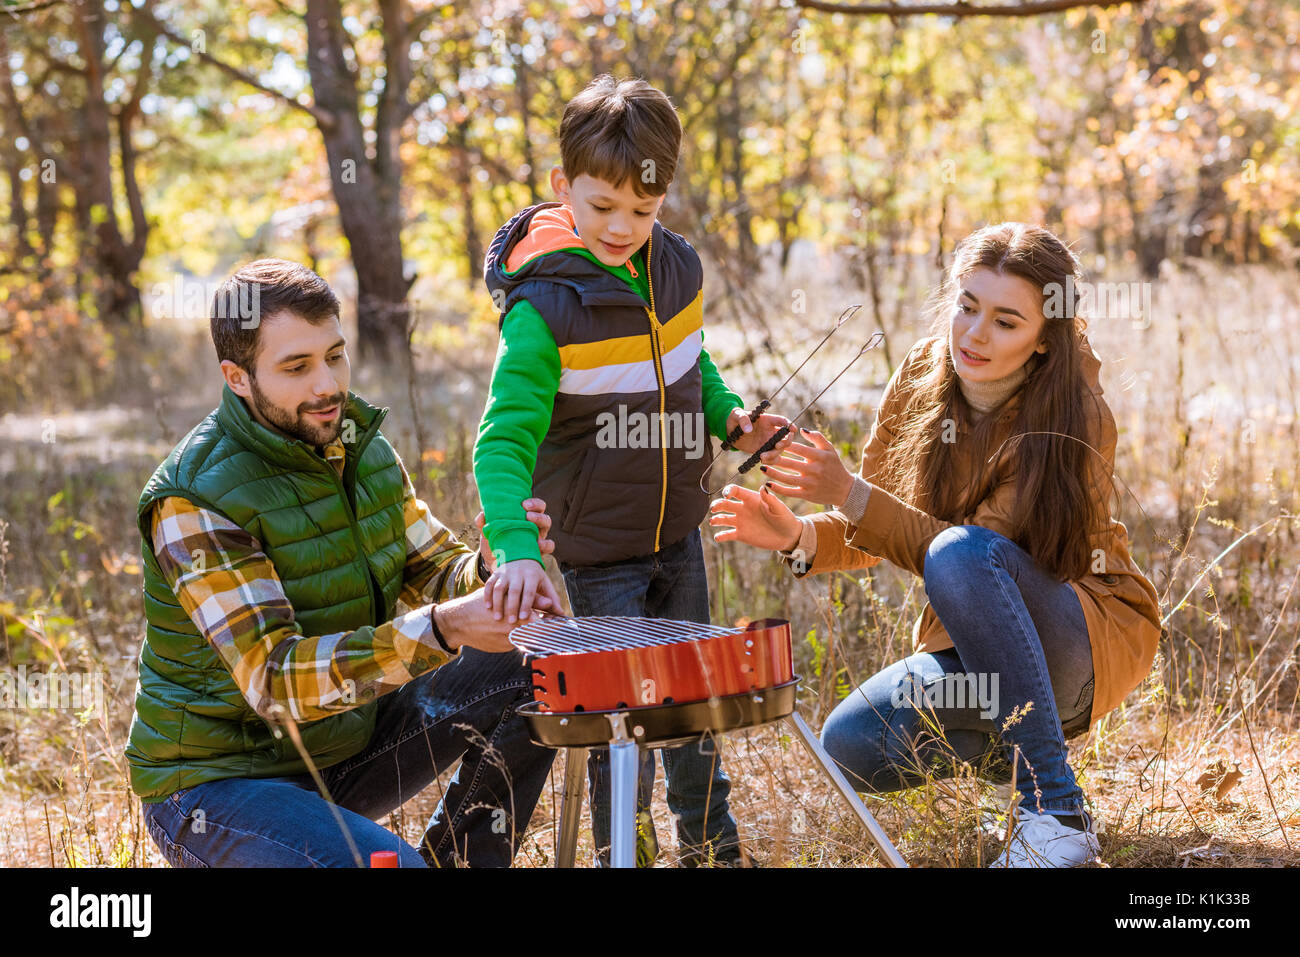 Portrait of happy family with one child preparing barbecue on grill in autumn park - Stock Image